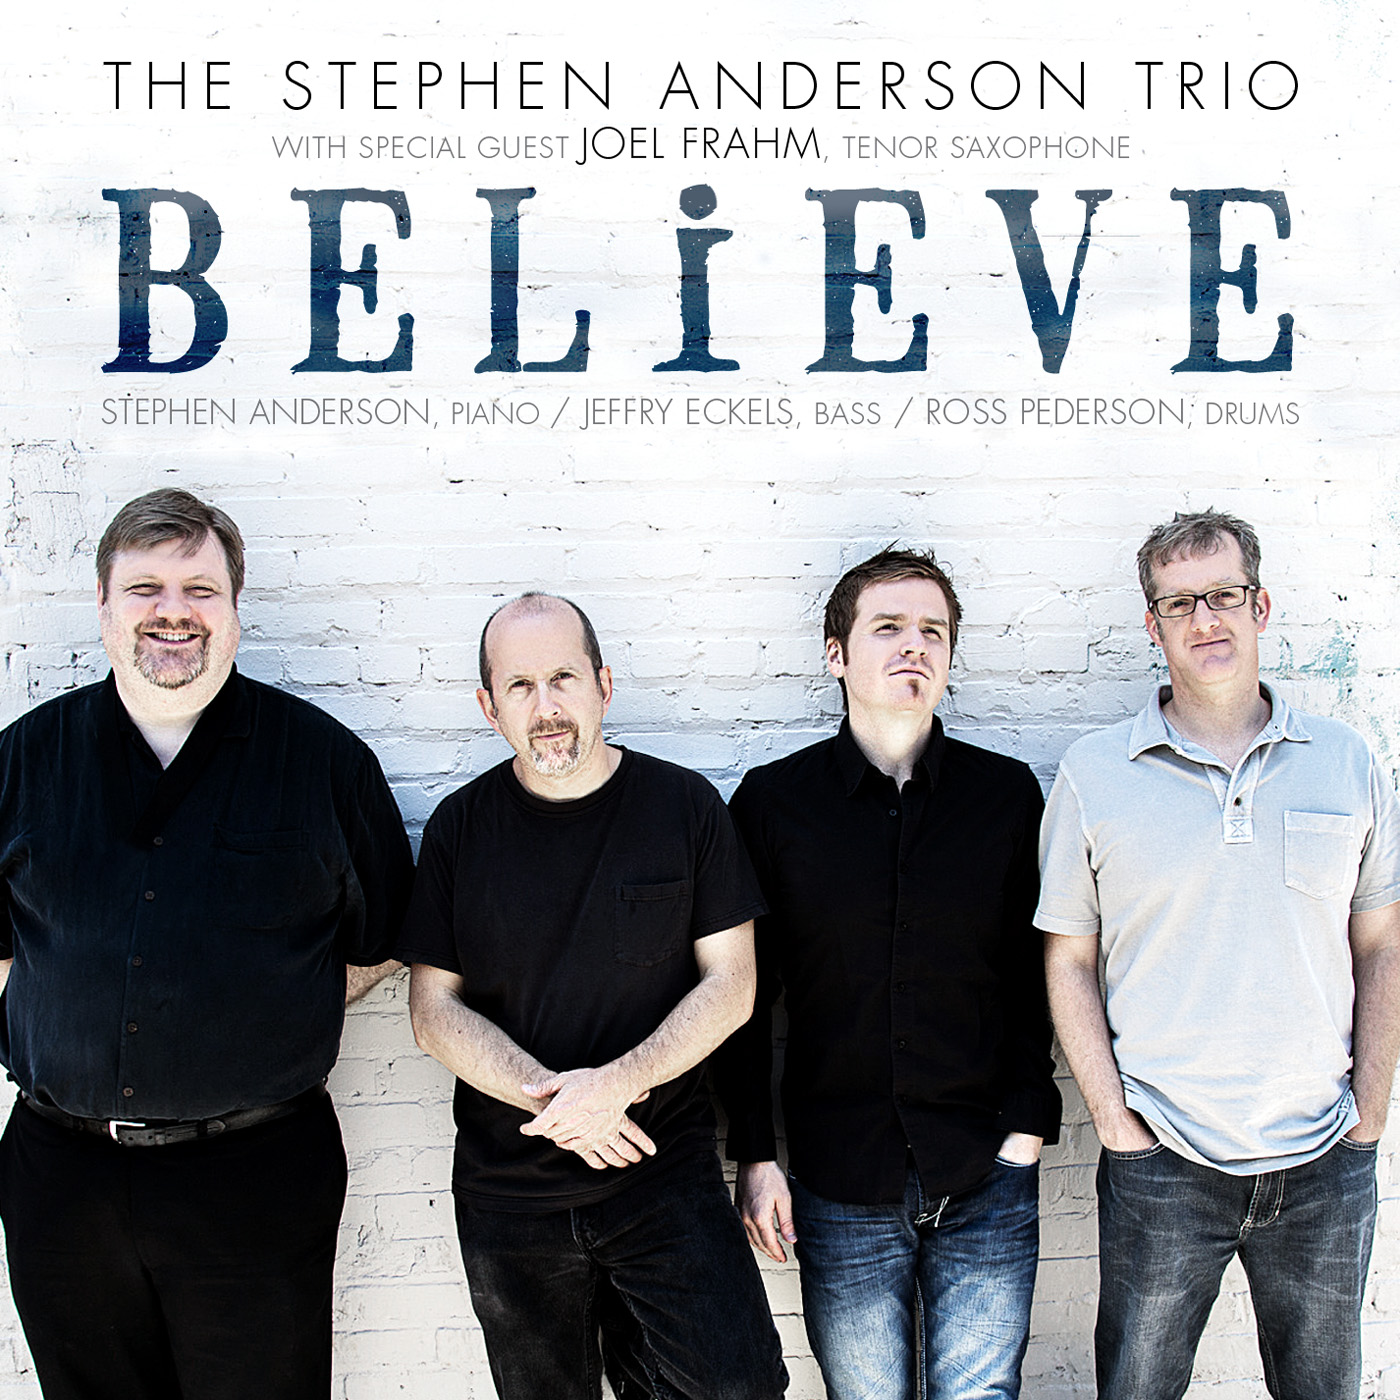 The stephen anderson trio with special guest, joel frahm